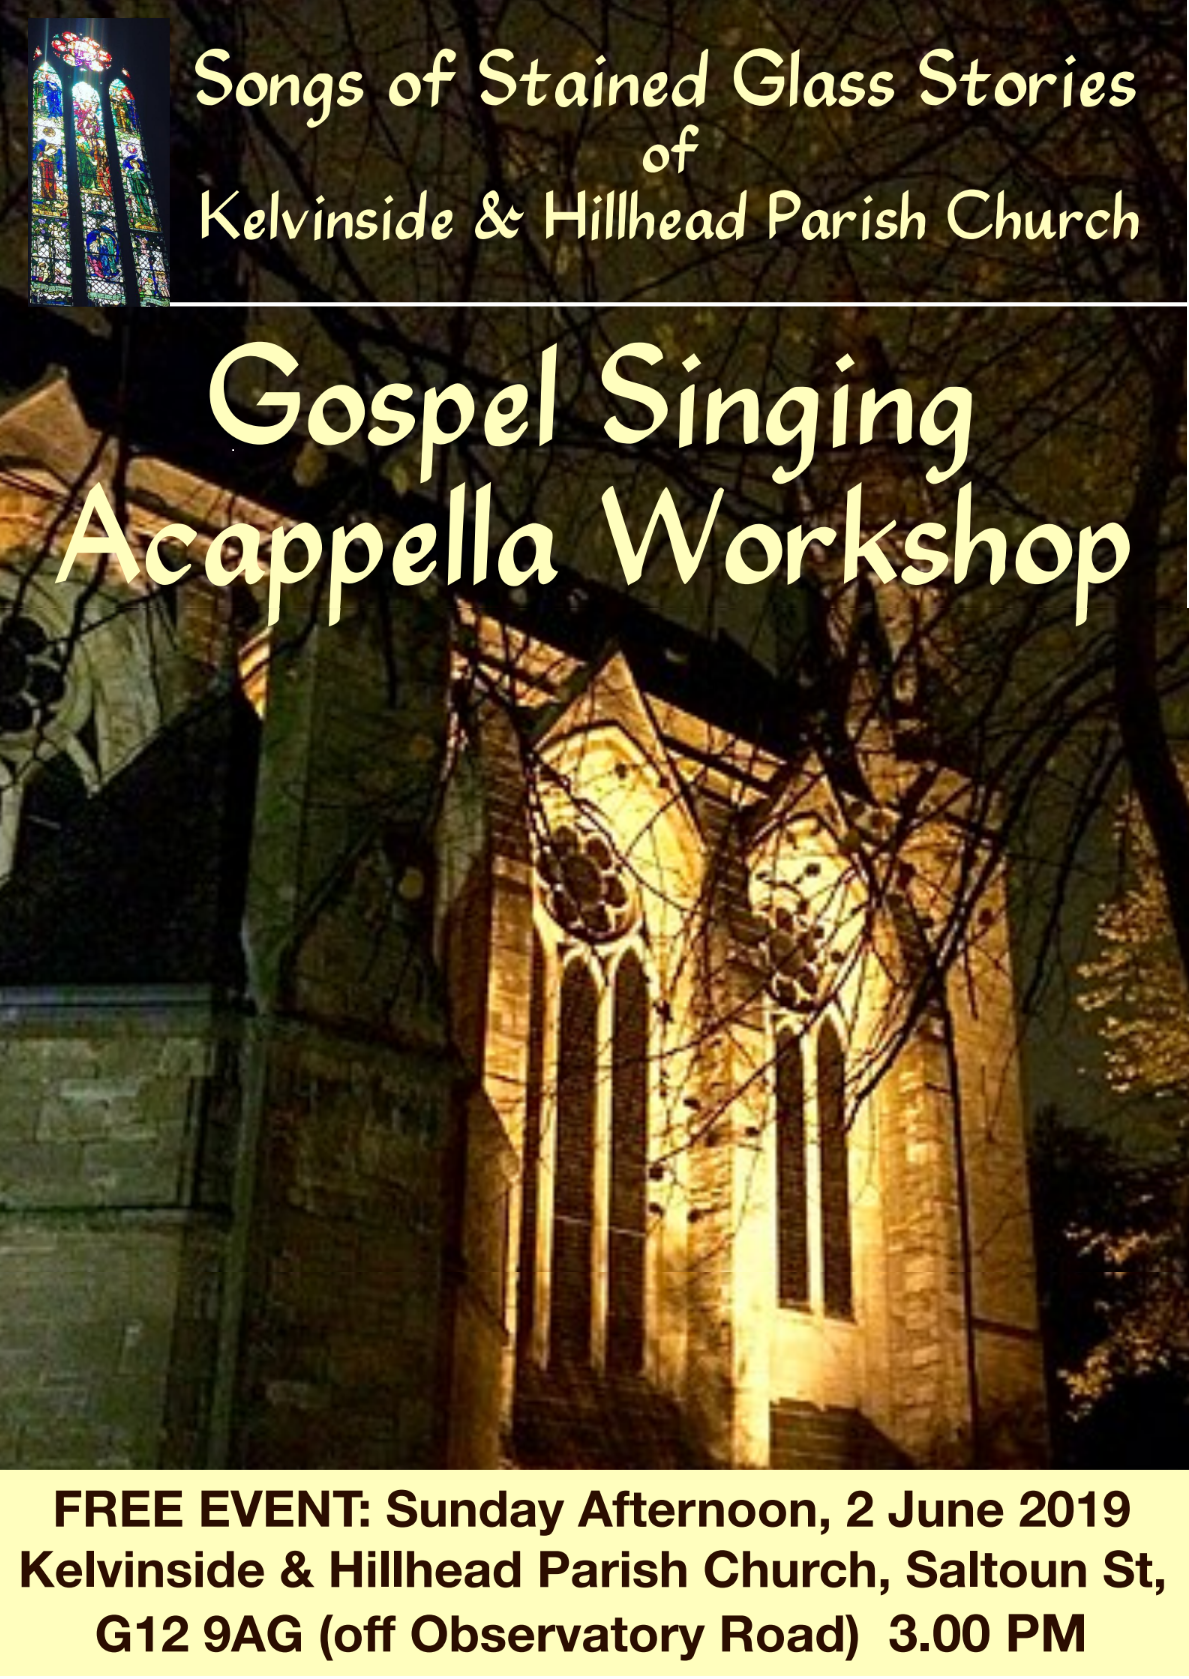 Songs of stained glass stories. Gospel singing acappella workshop, 3pm, 2nd June Kelvinside Hillhead Parish Church.